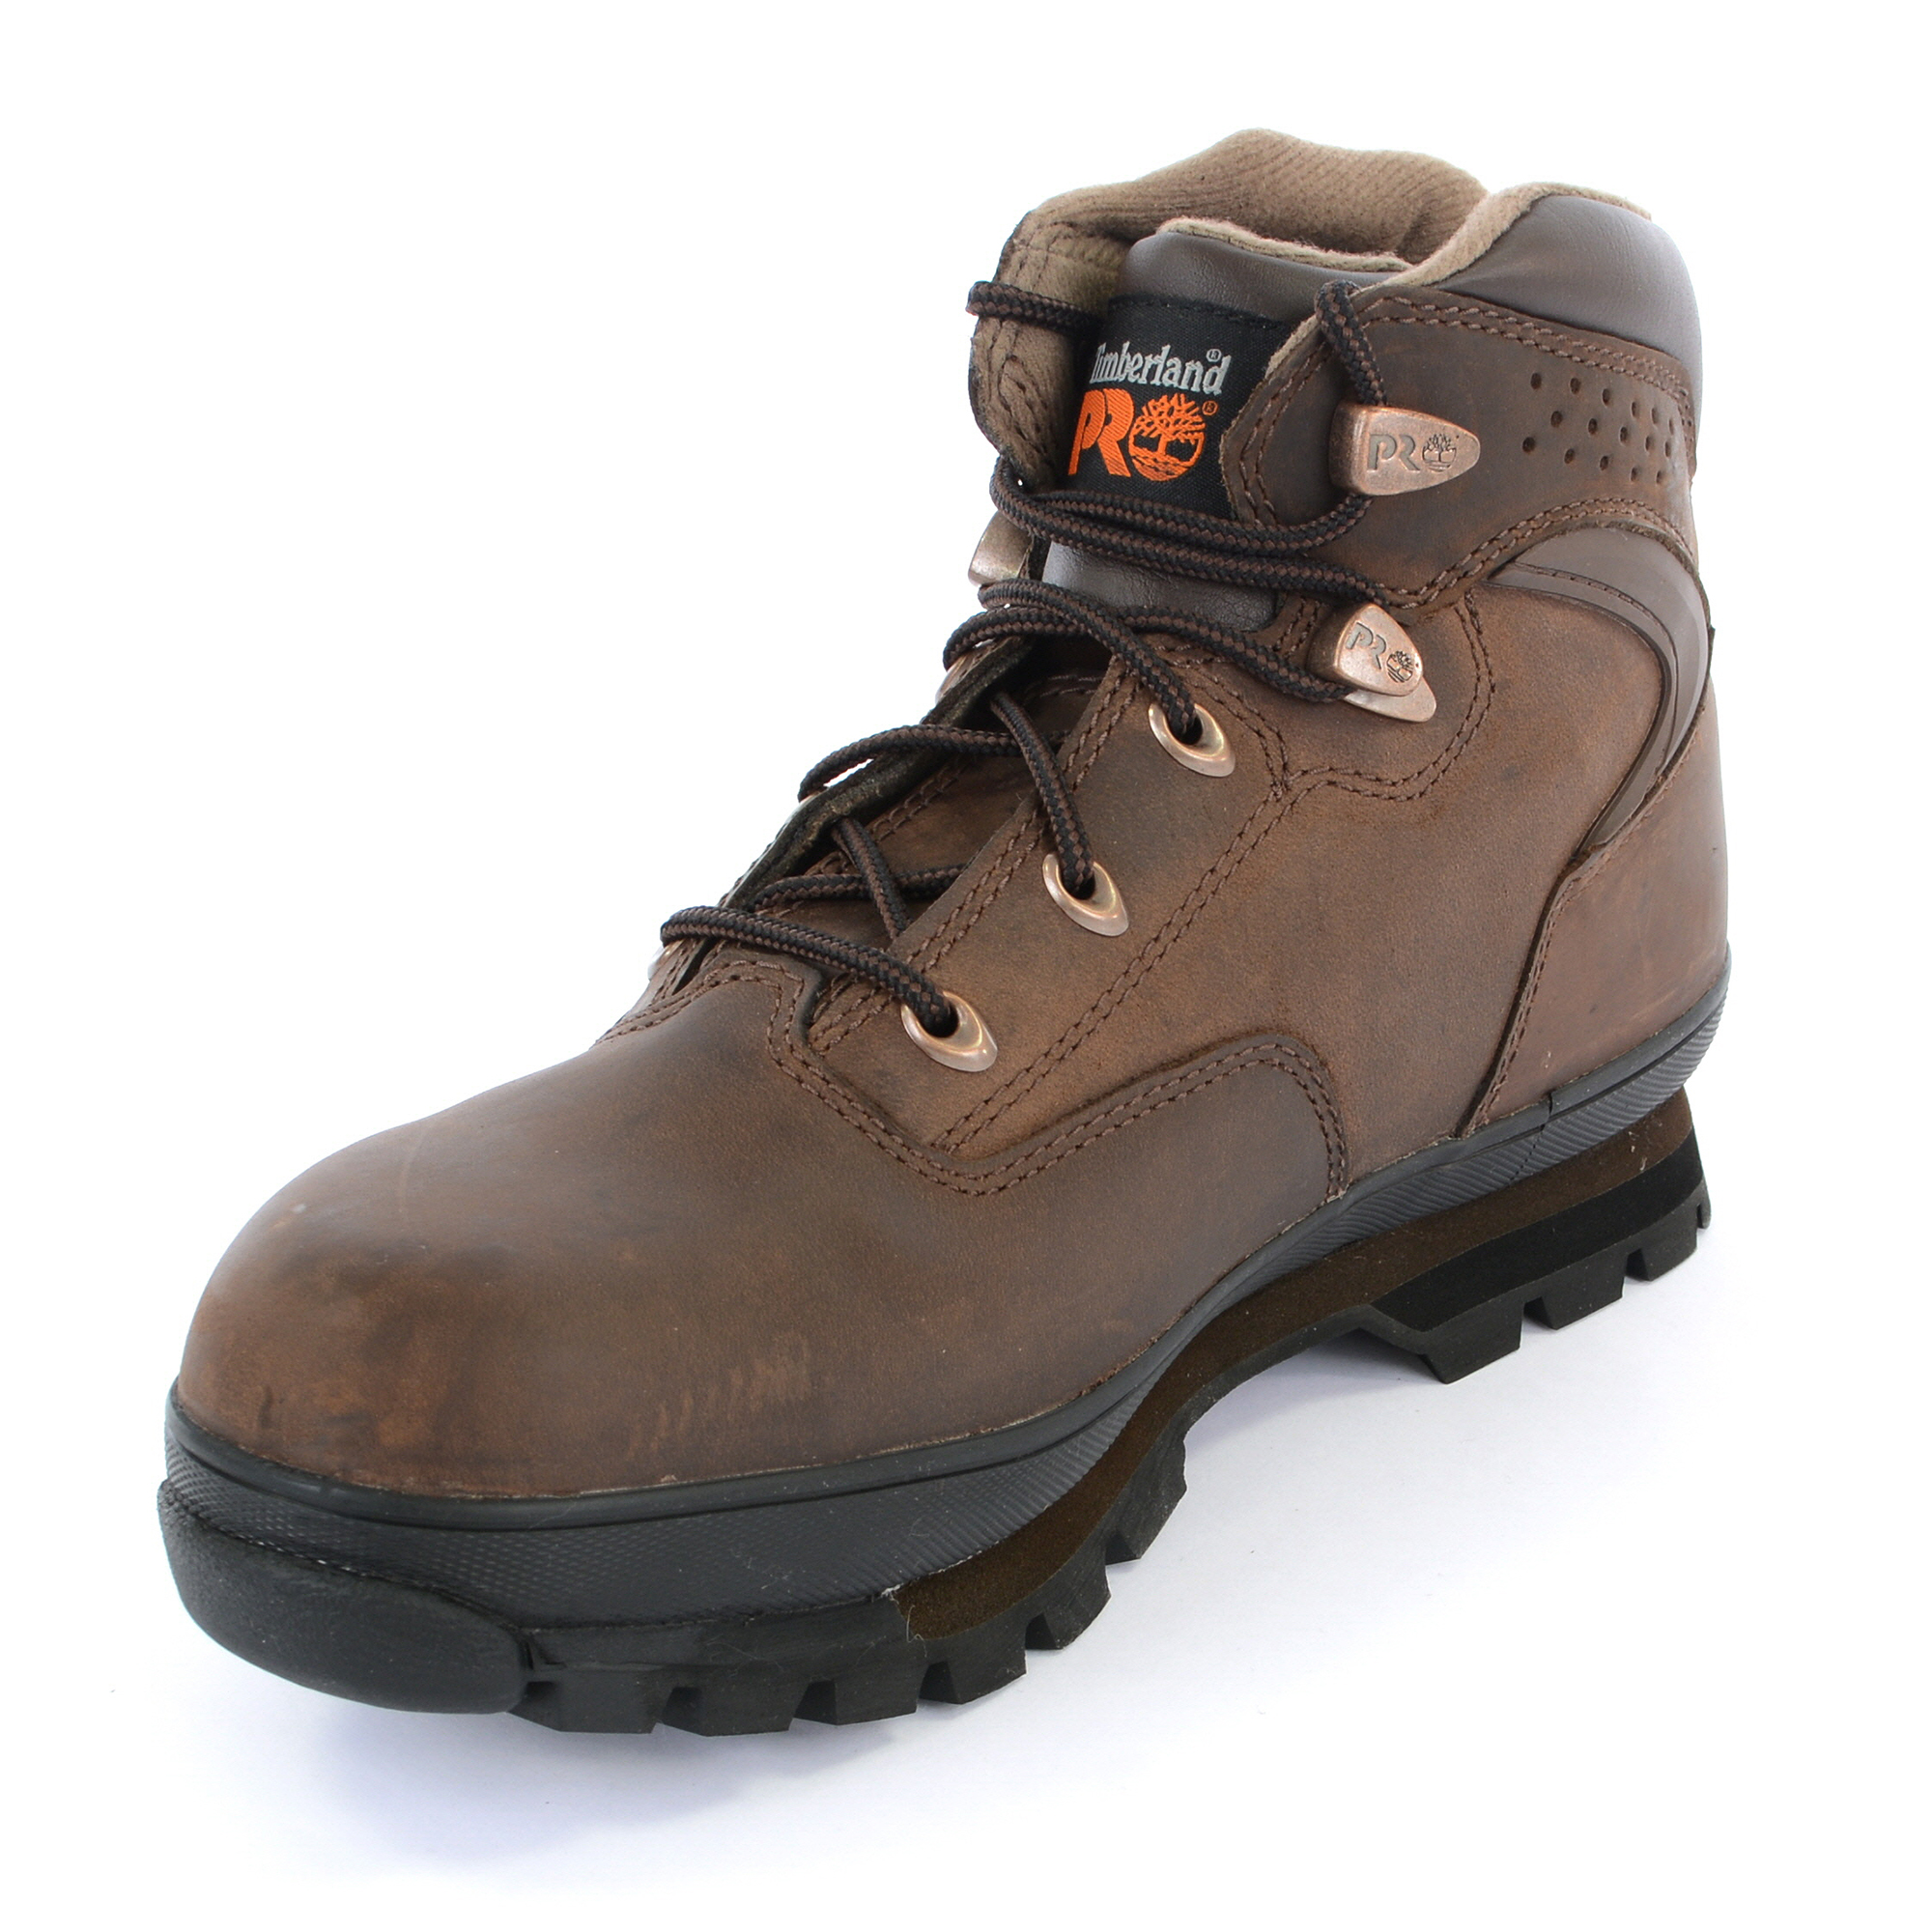 3d7316144fe Timberland Pro,6201065,Euro Hiker Safety Boots - Brown